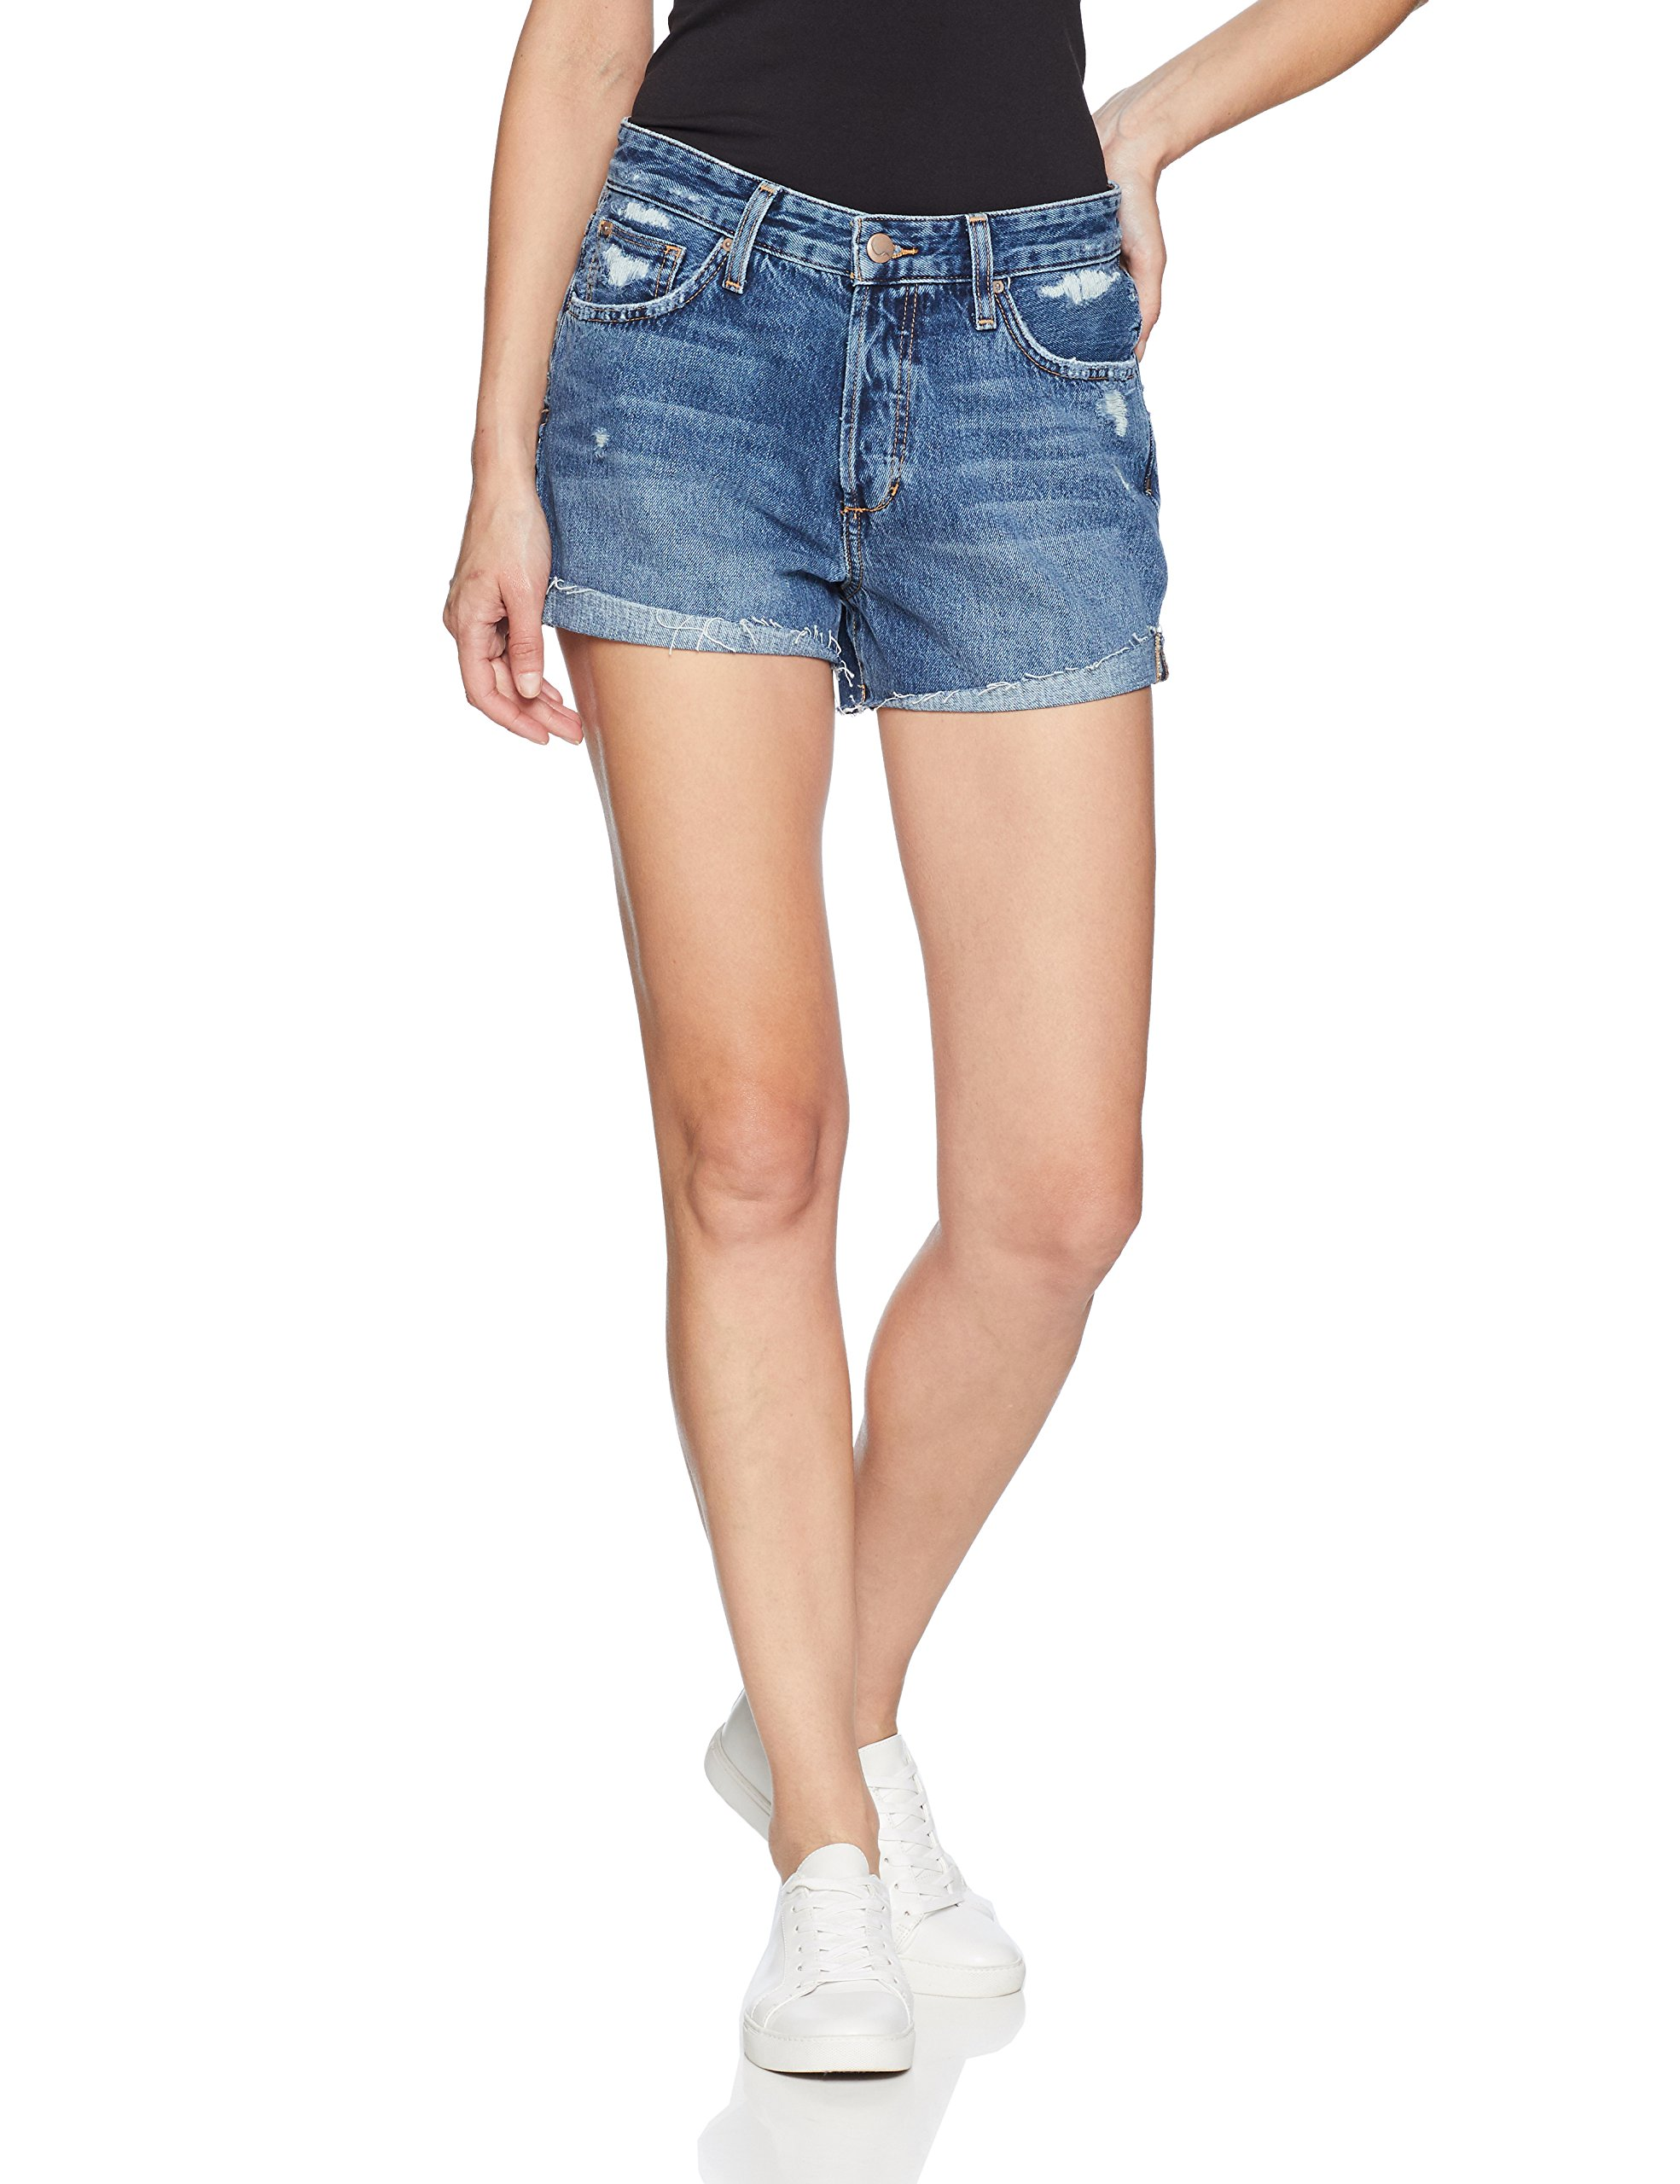 Joe's Jeans Women's Lover Midrise Boyfriend Short, Tamryn, 29